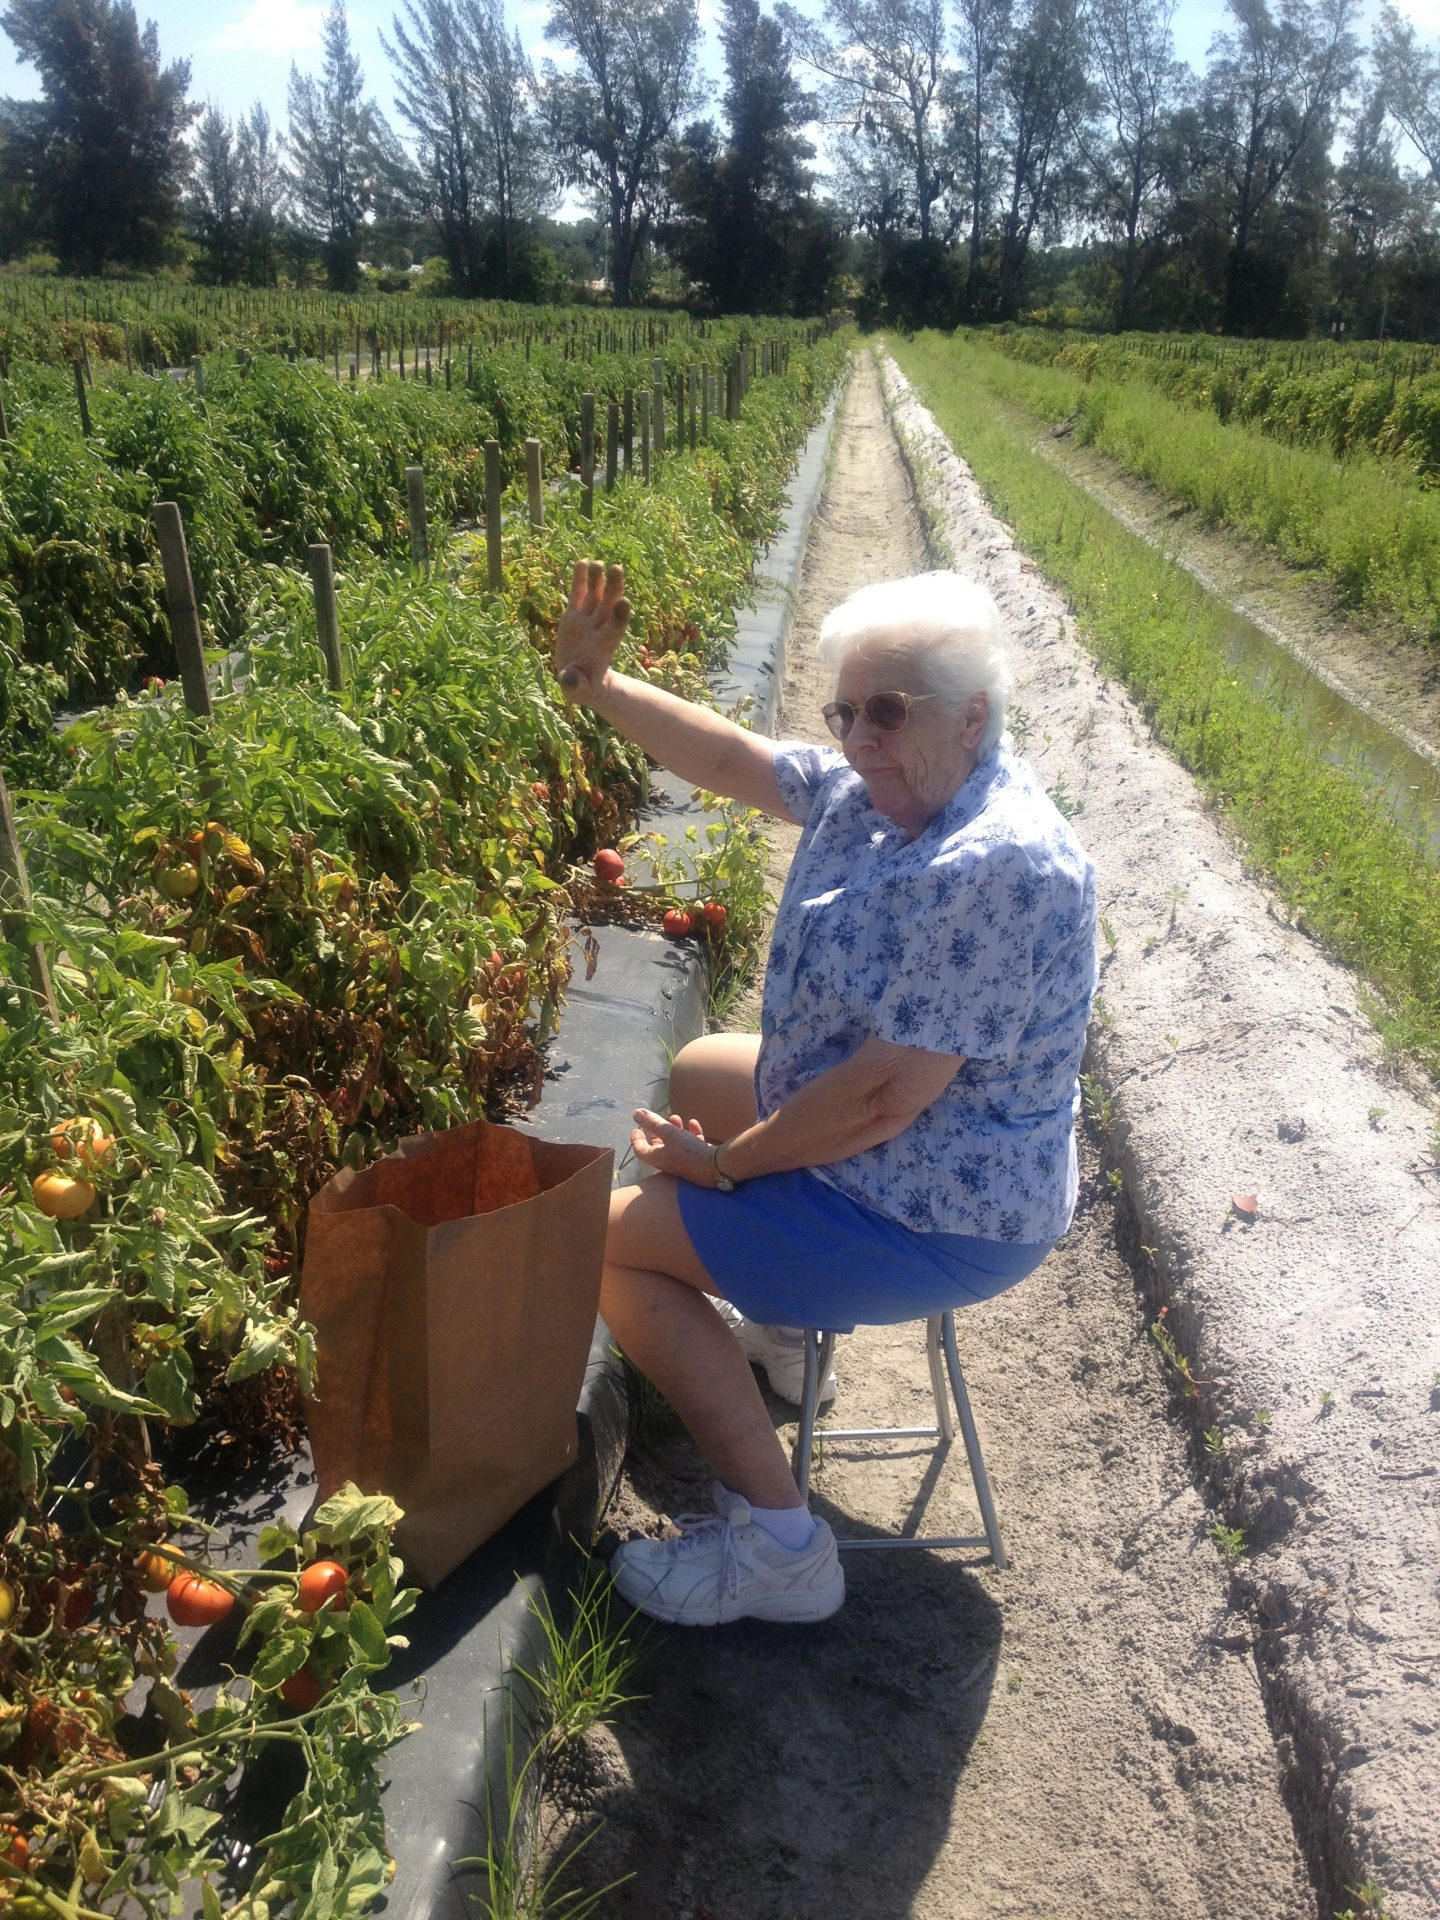 Picking tomatoes with Mama Mary